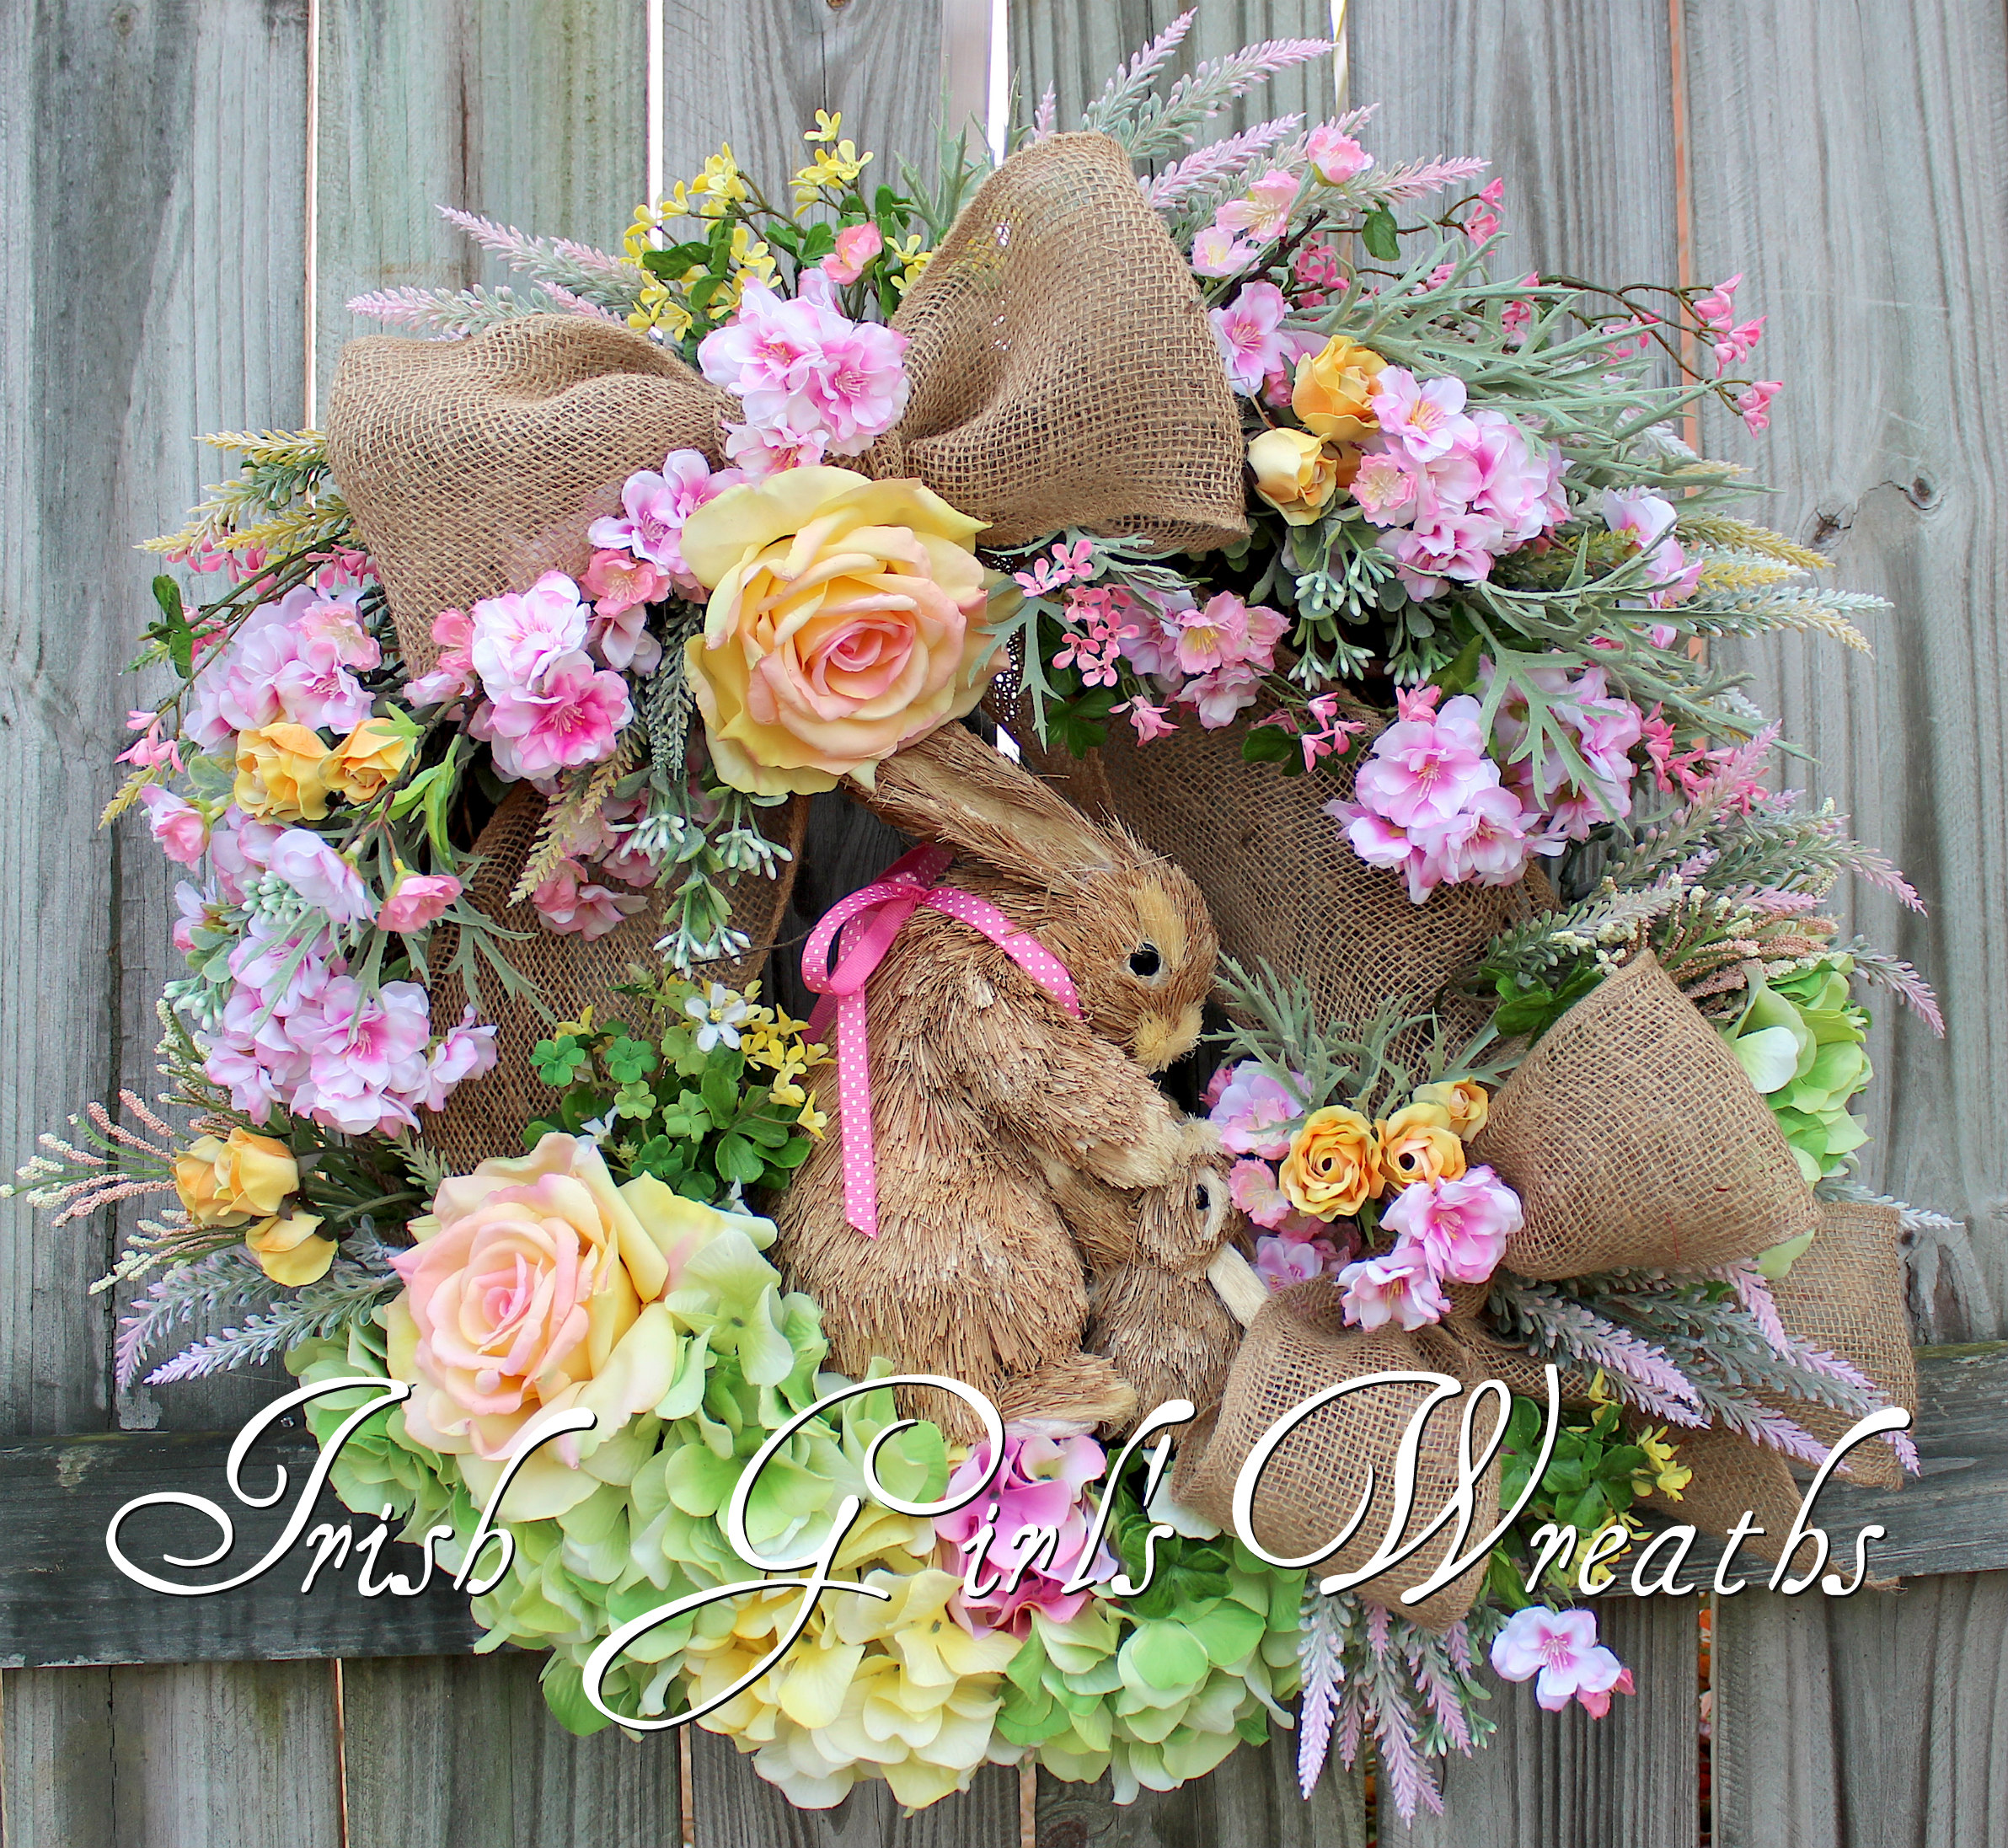 Pink & Yellow Cherry Blossom Rose Spring Bunny Rabbits Wreath, Nursery, Easter Floral Wreath